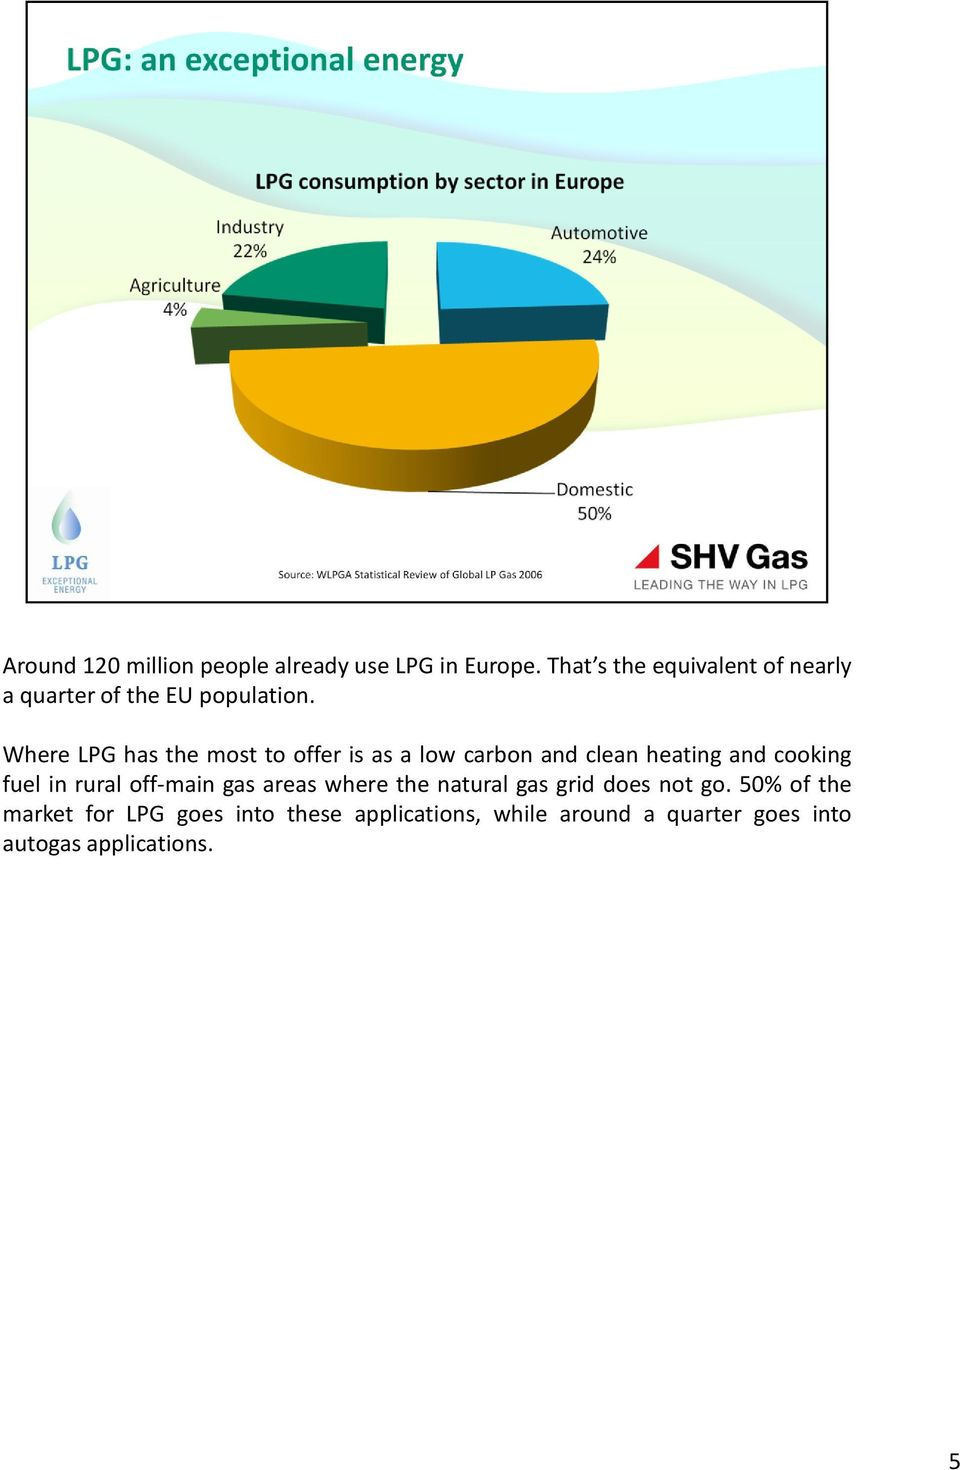 Where LPG has the most to offer is as a low carbon and clean heating and cooking fuel in rural